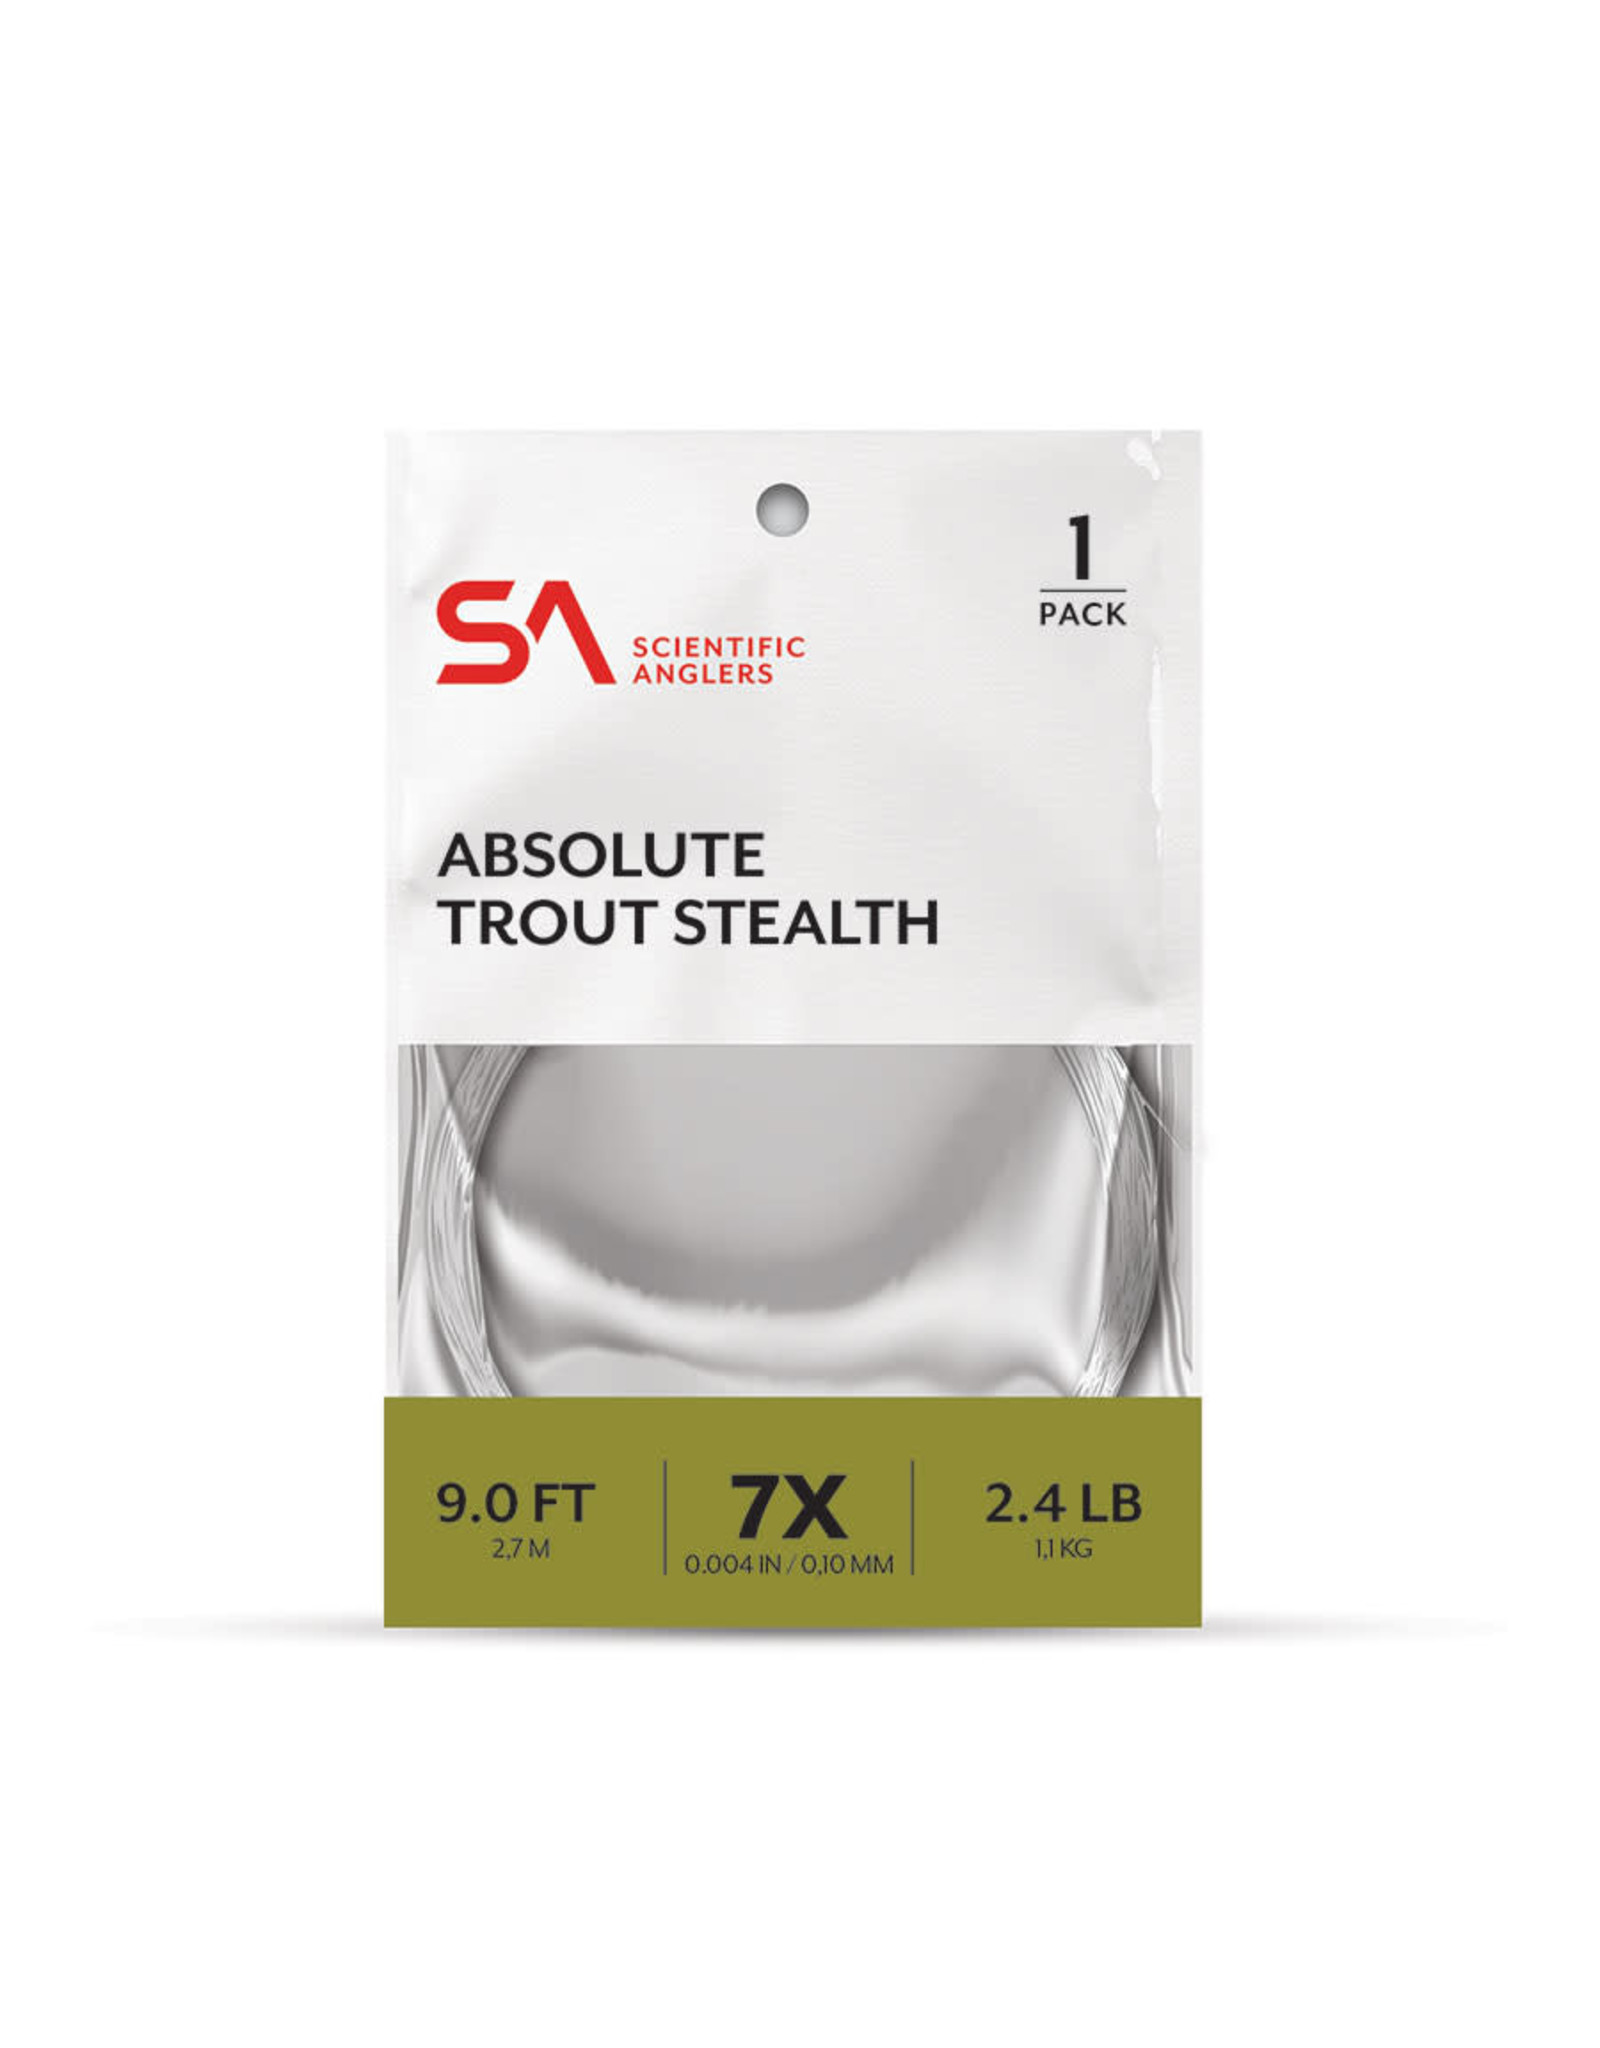 SCIENTIFIC ANGLERS Absolute Trout Stealth Leader 9' 5X - 1 Pack